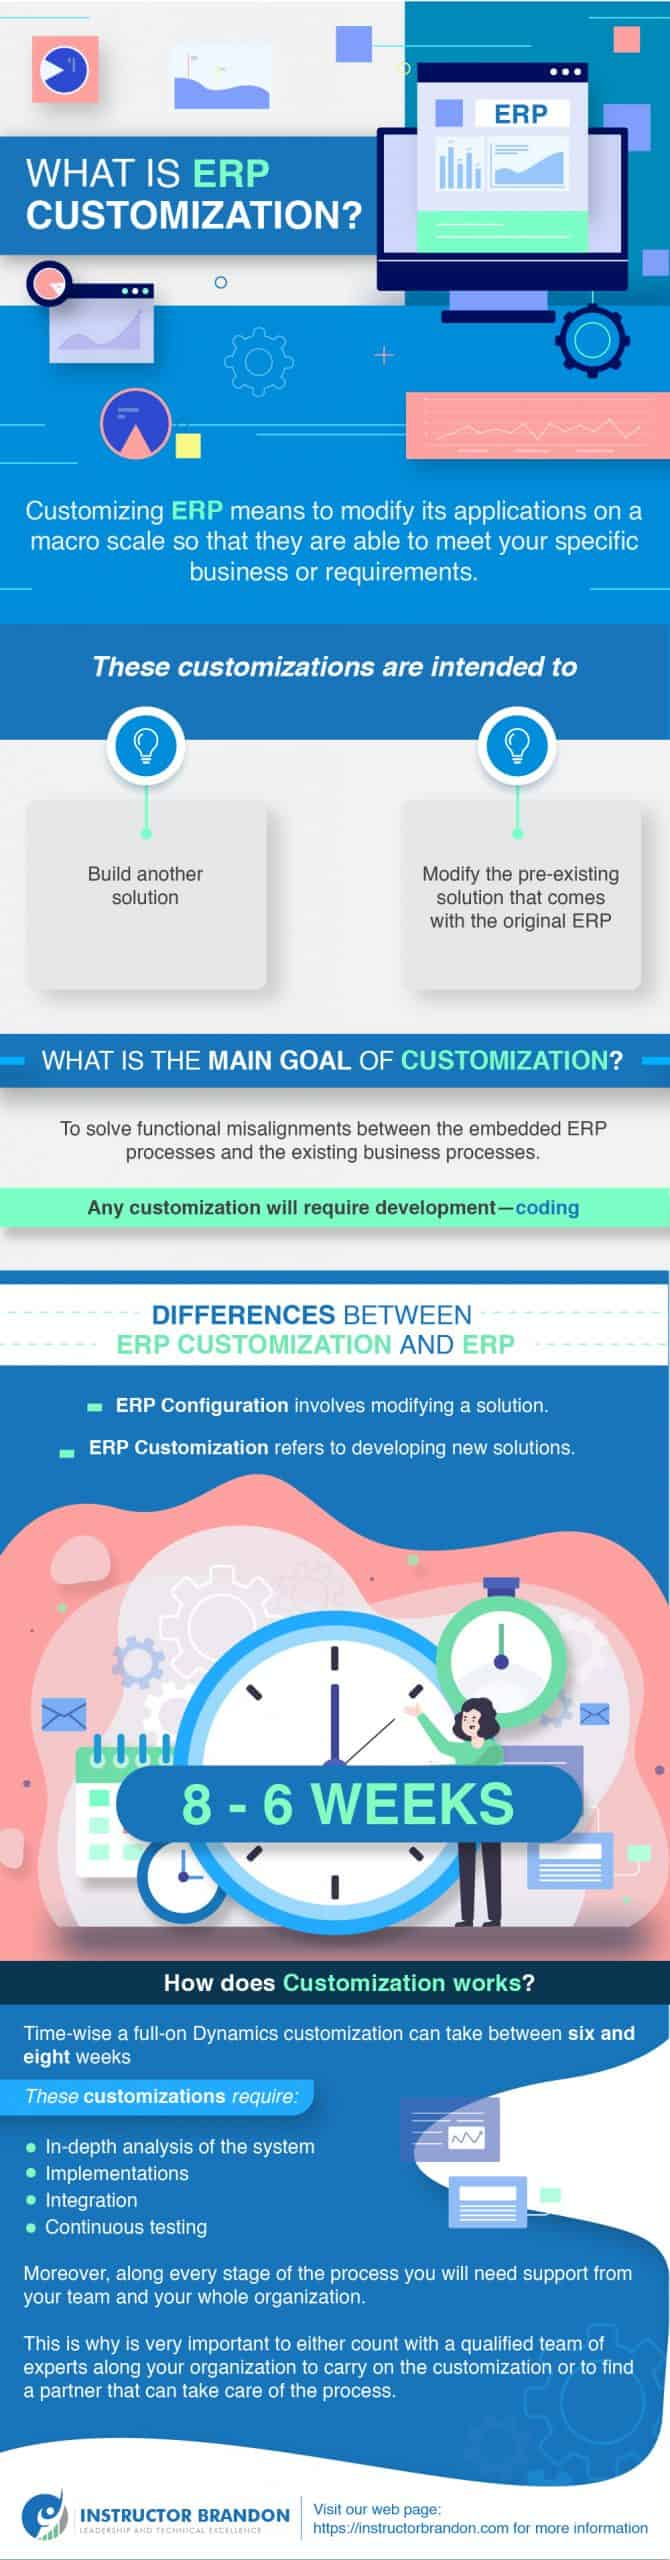 What is ERP Customization?